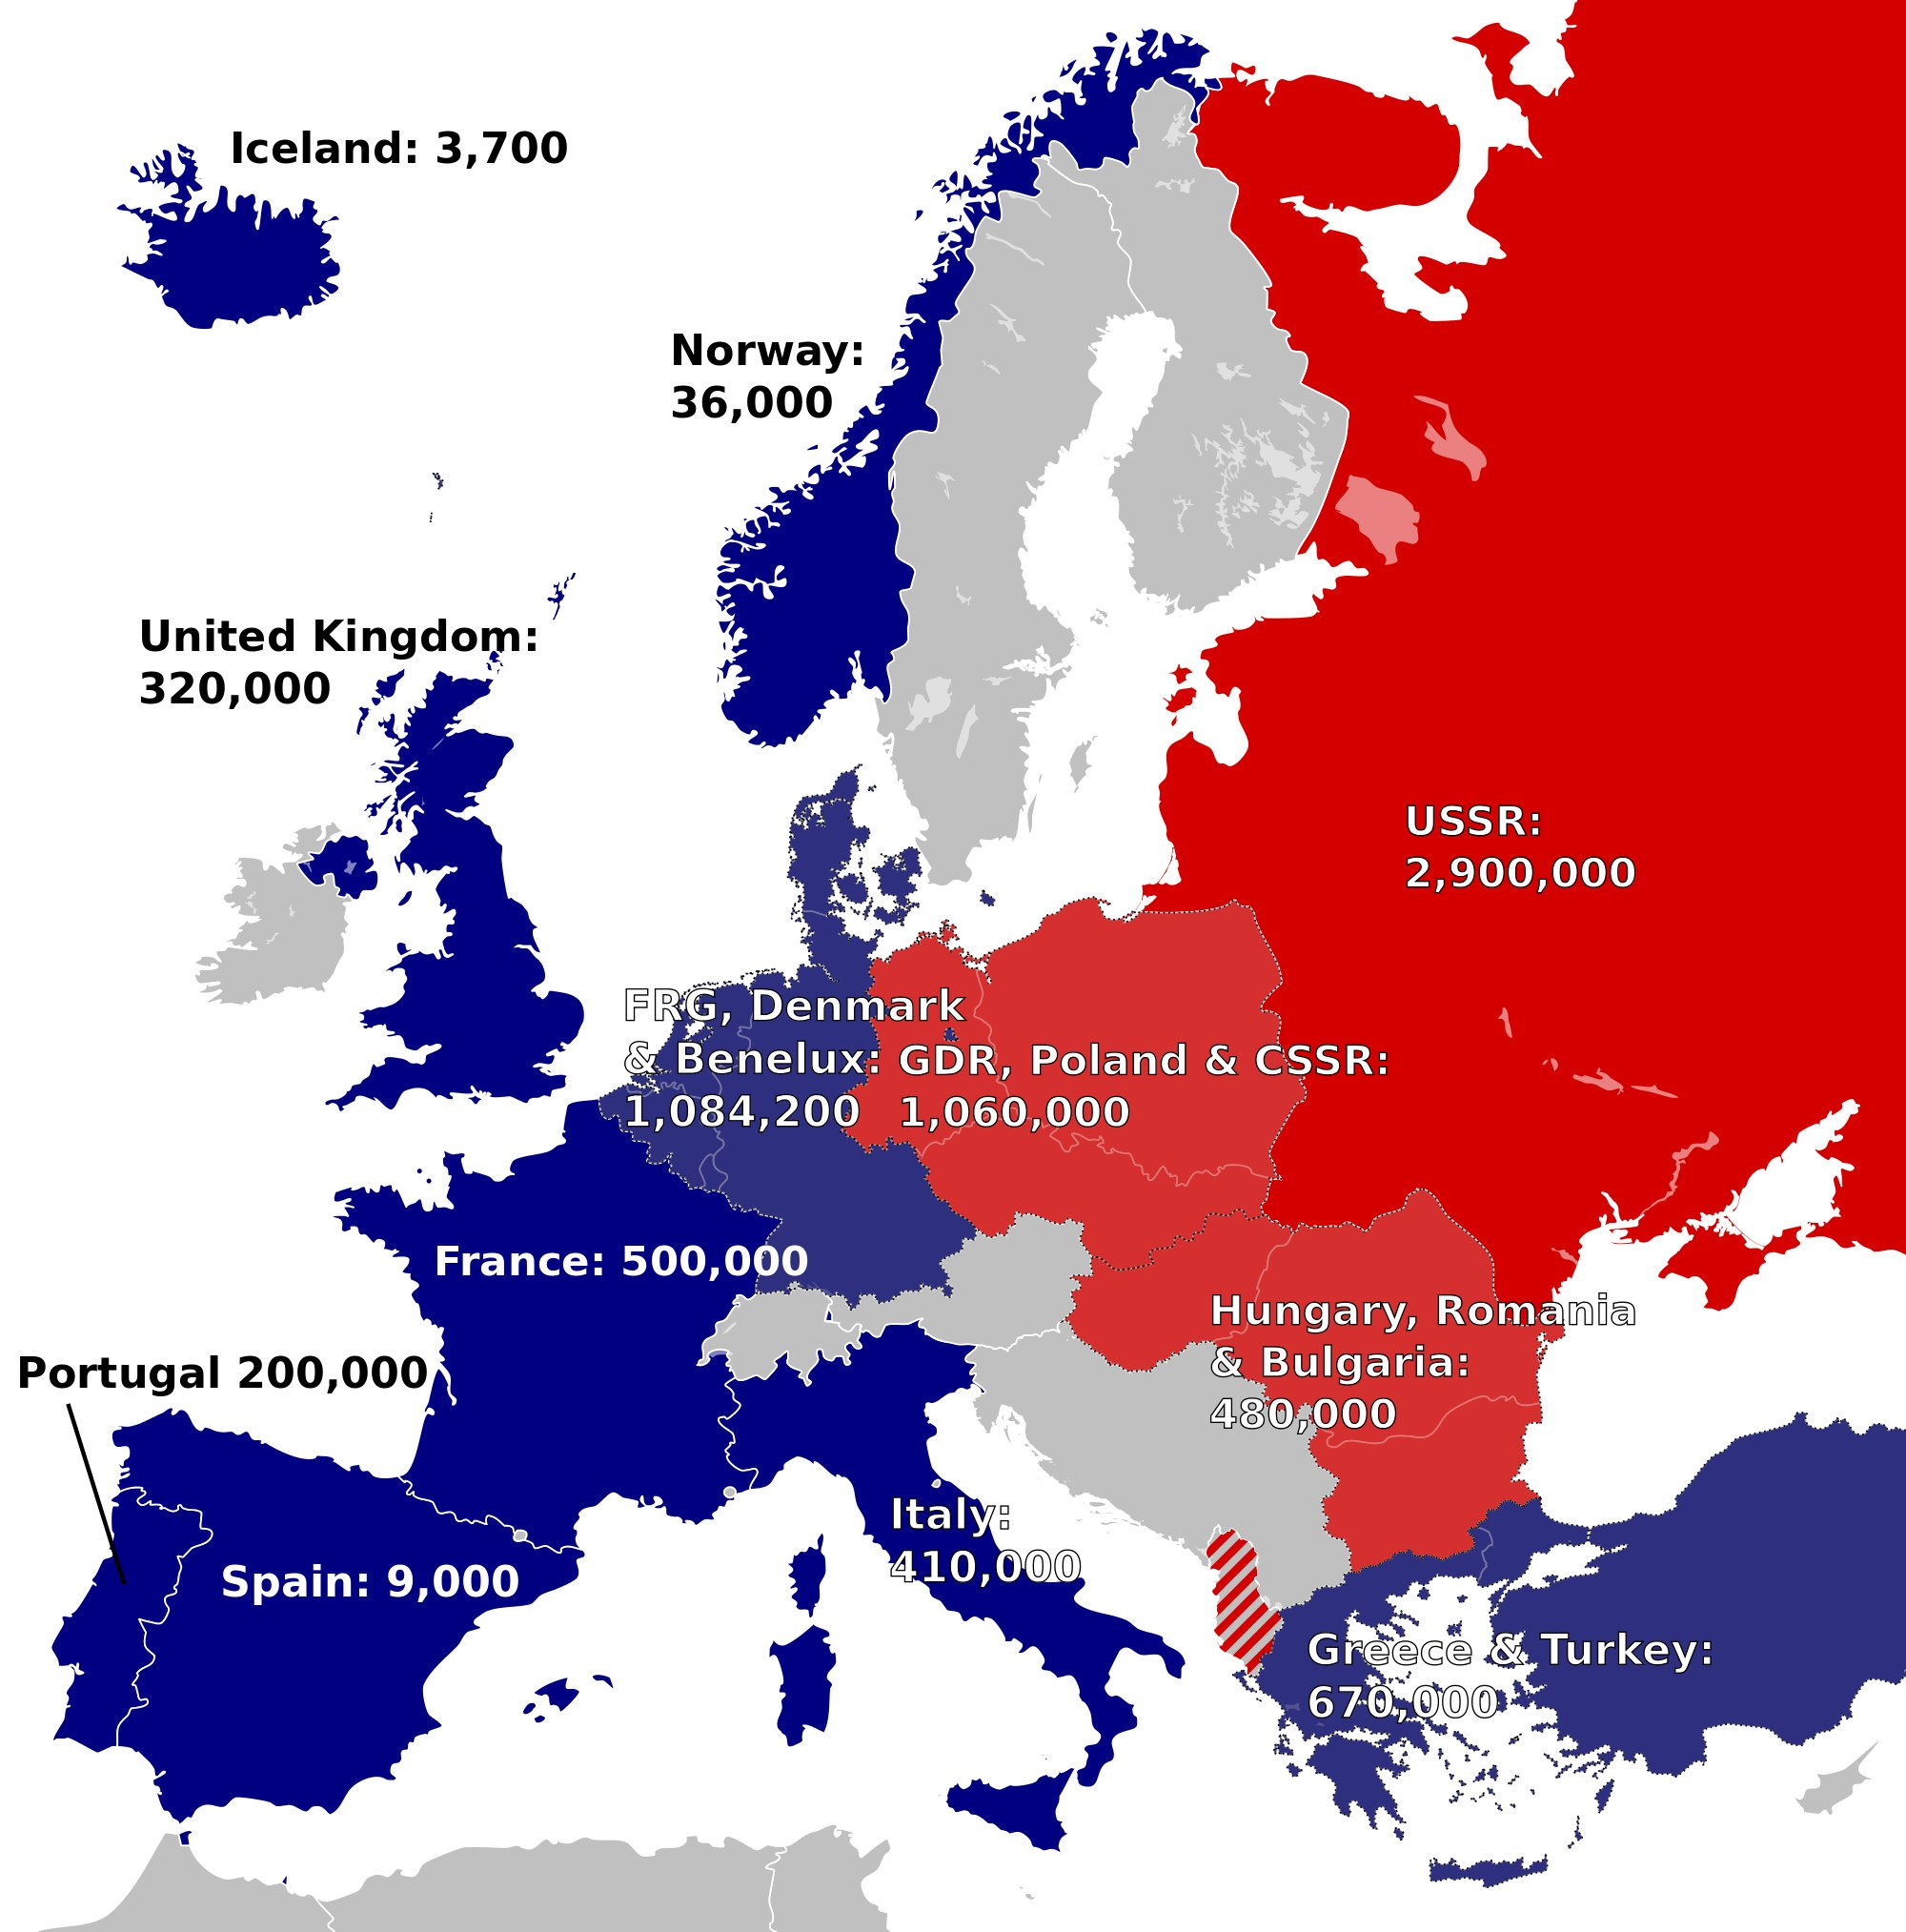 Military_power_of_NATO_and_the_Warsaw_Pact_states_in_1973.svg